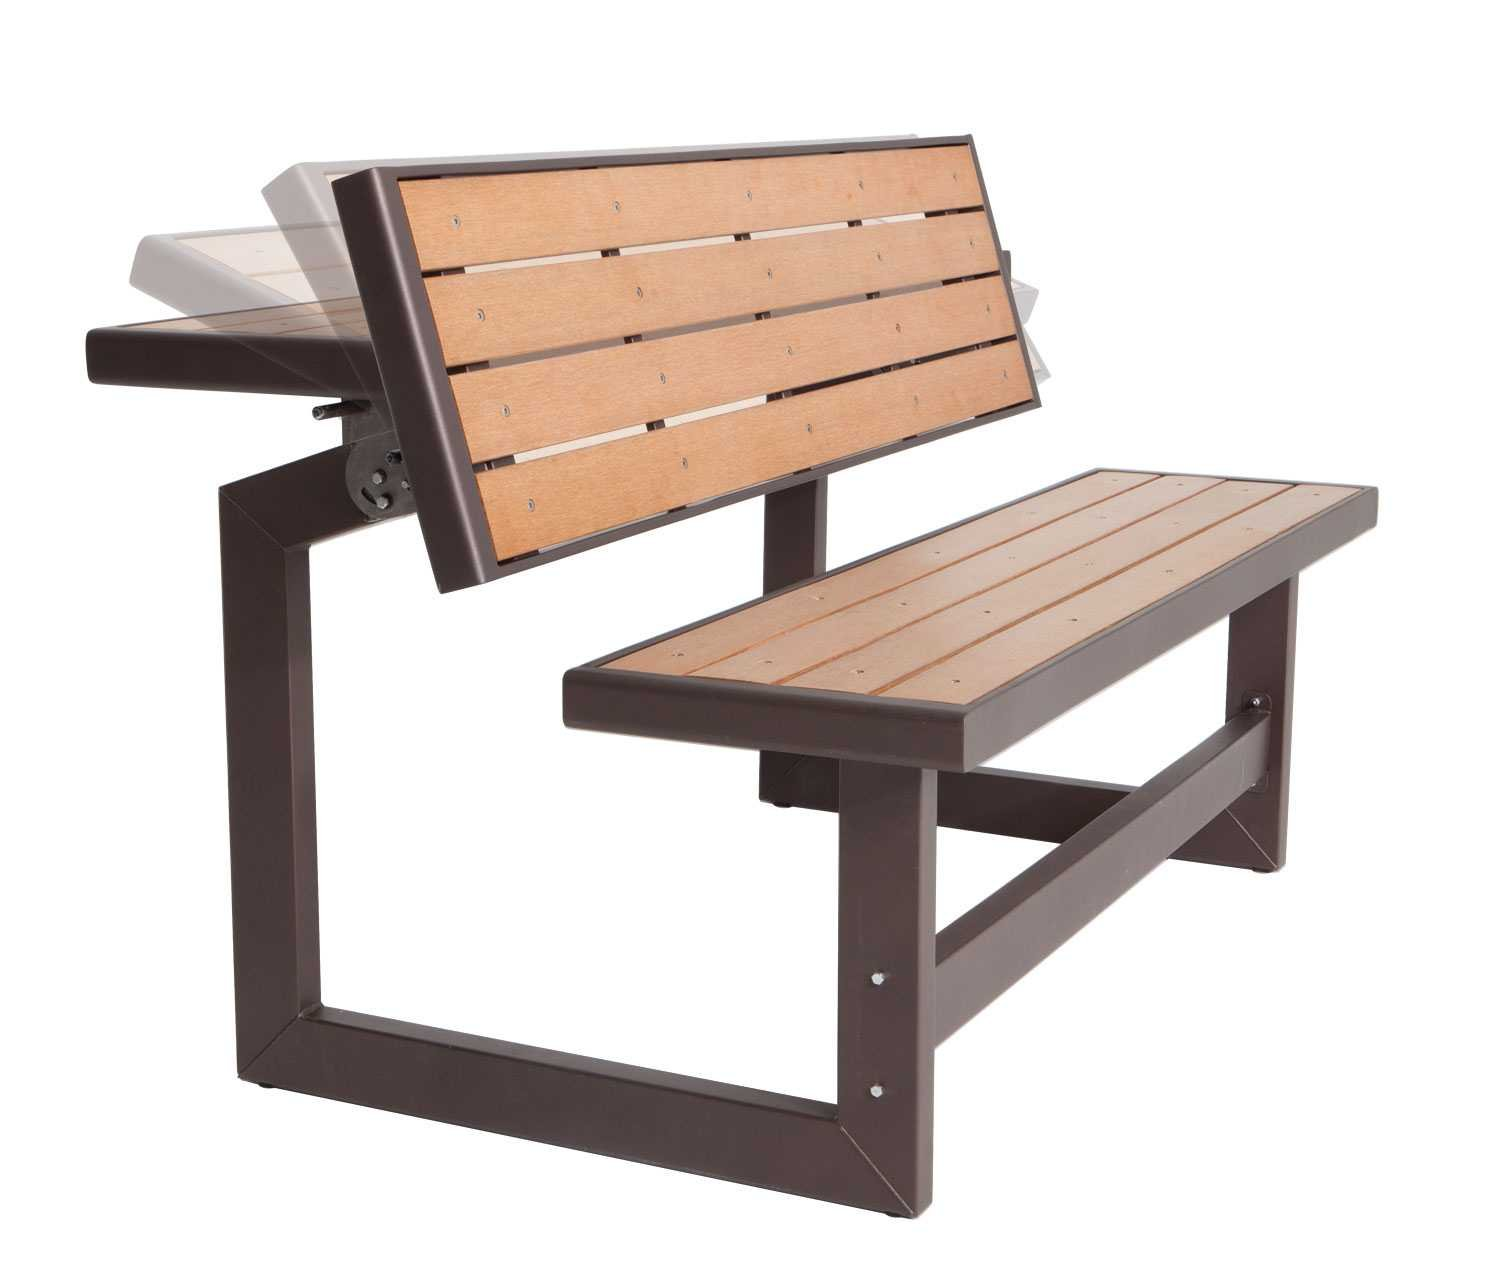 Amazon.com : Lifetime 60054 Convertible Bench / Table, Faux Wood  Construction : Outdoor Benches : Patio, Lawn & Garden - Amazon.com : Lifetime 60054 Convertible Bench / Table, Faux Wood